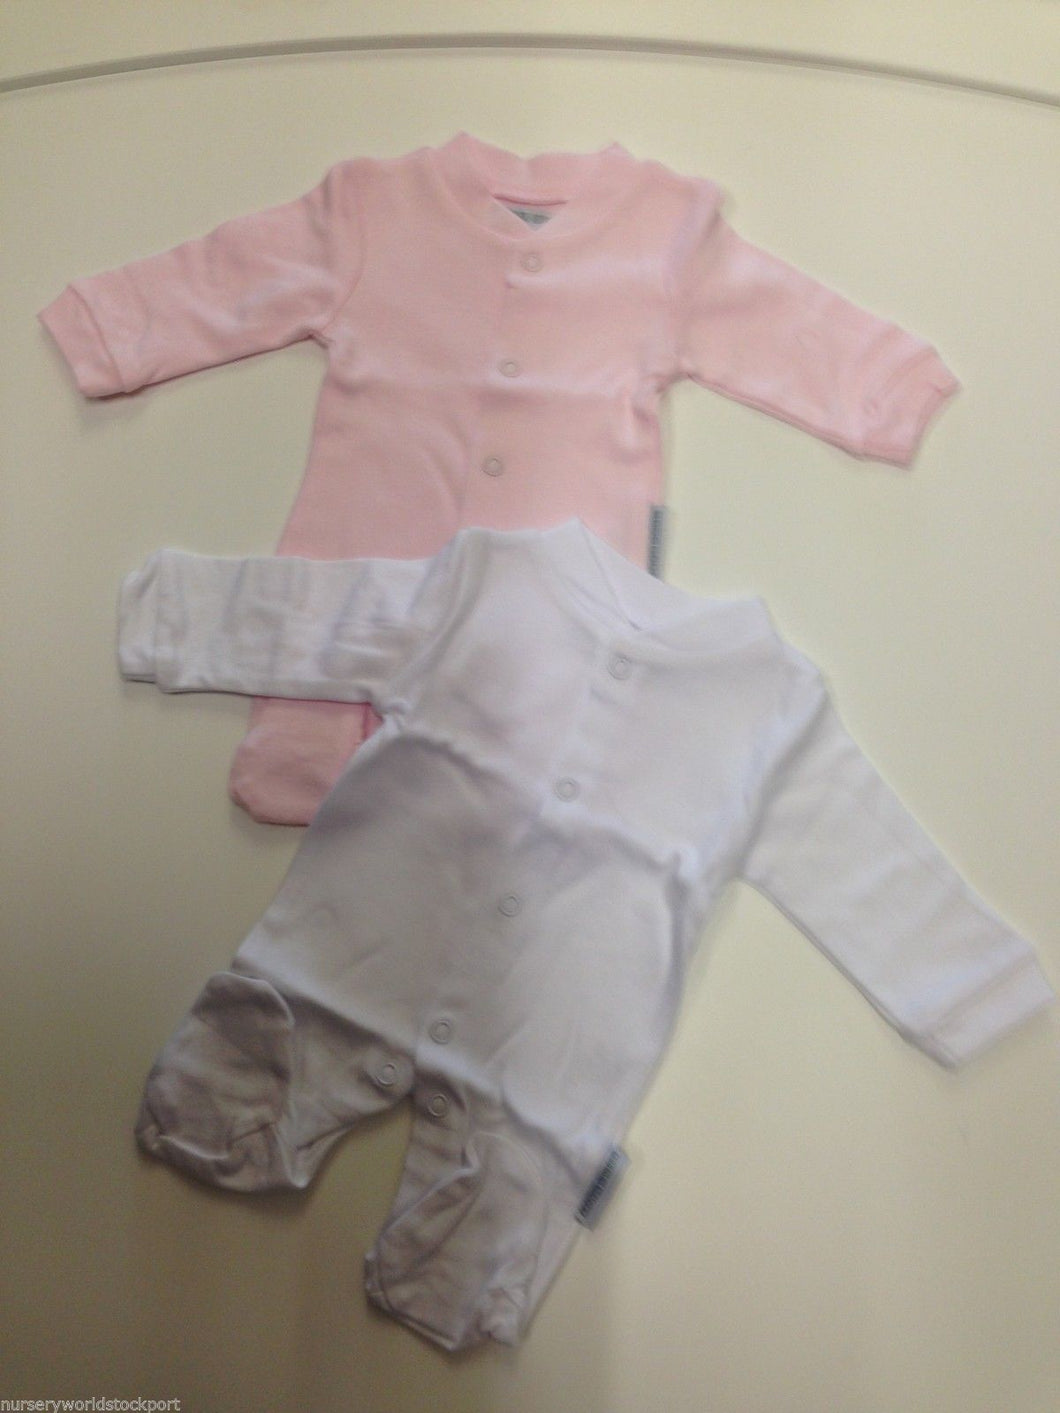 Tiny Baby Sleep suits 100% Cotton Pink & White